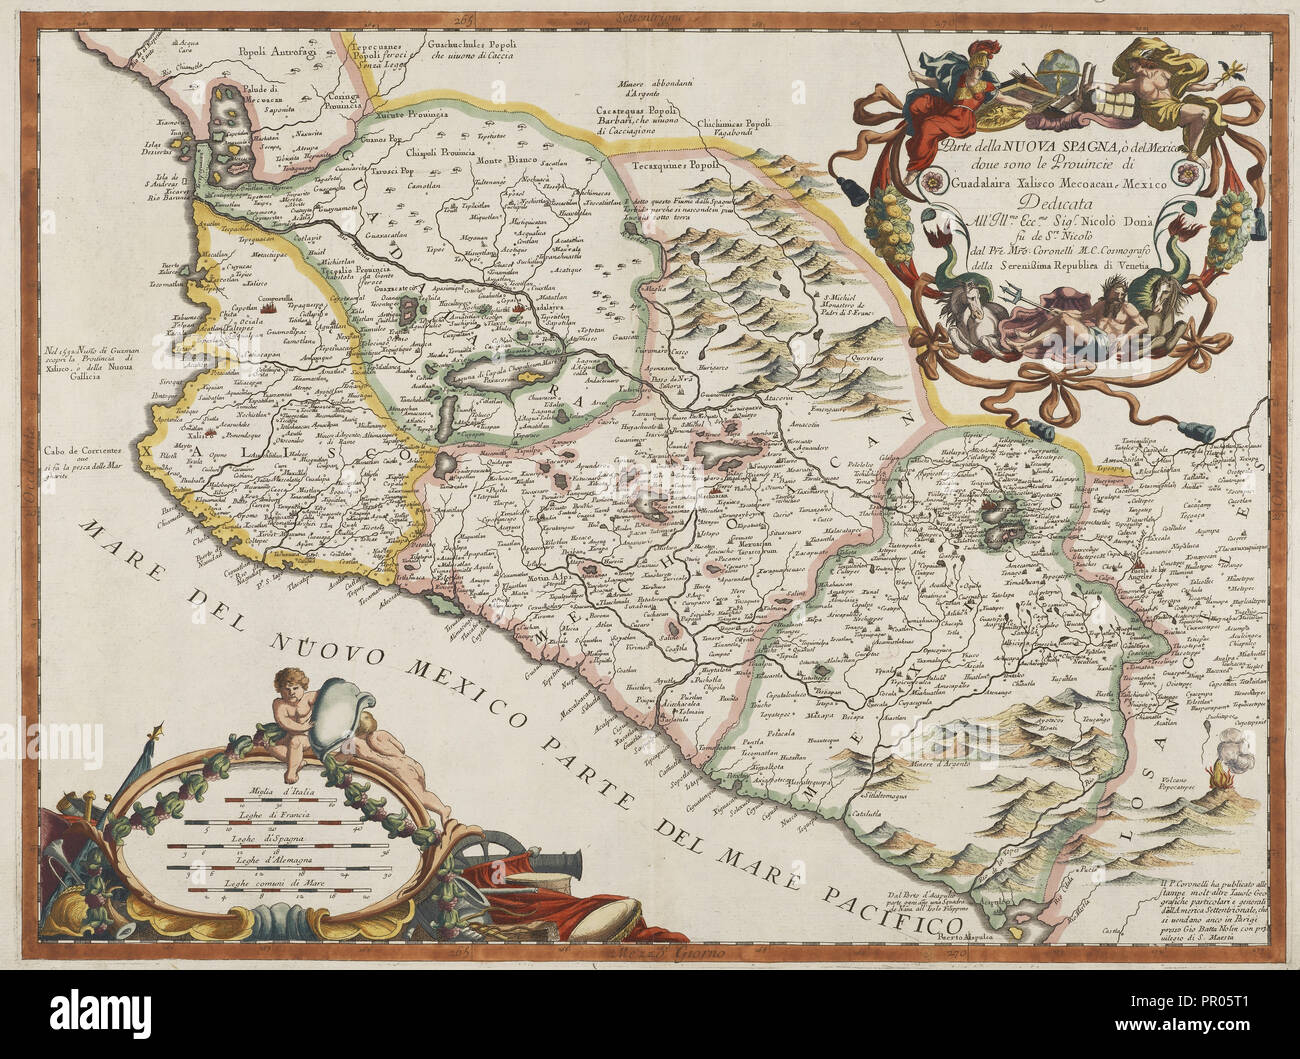 Gutierrez collection of maps and images of the Americas, Lithograph - Stock Image